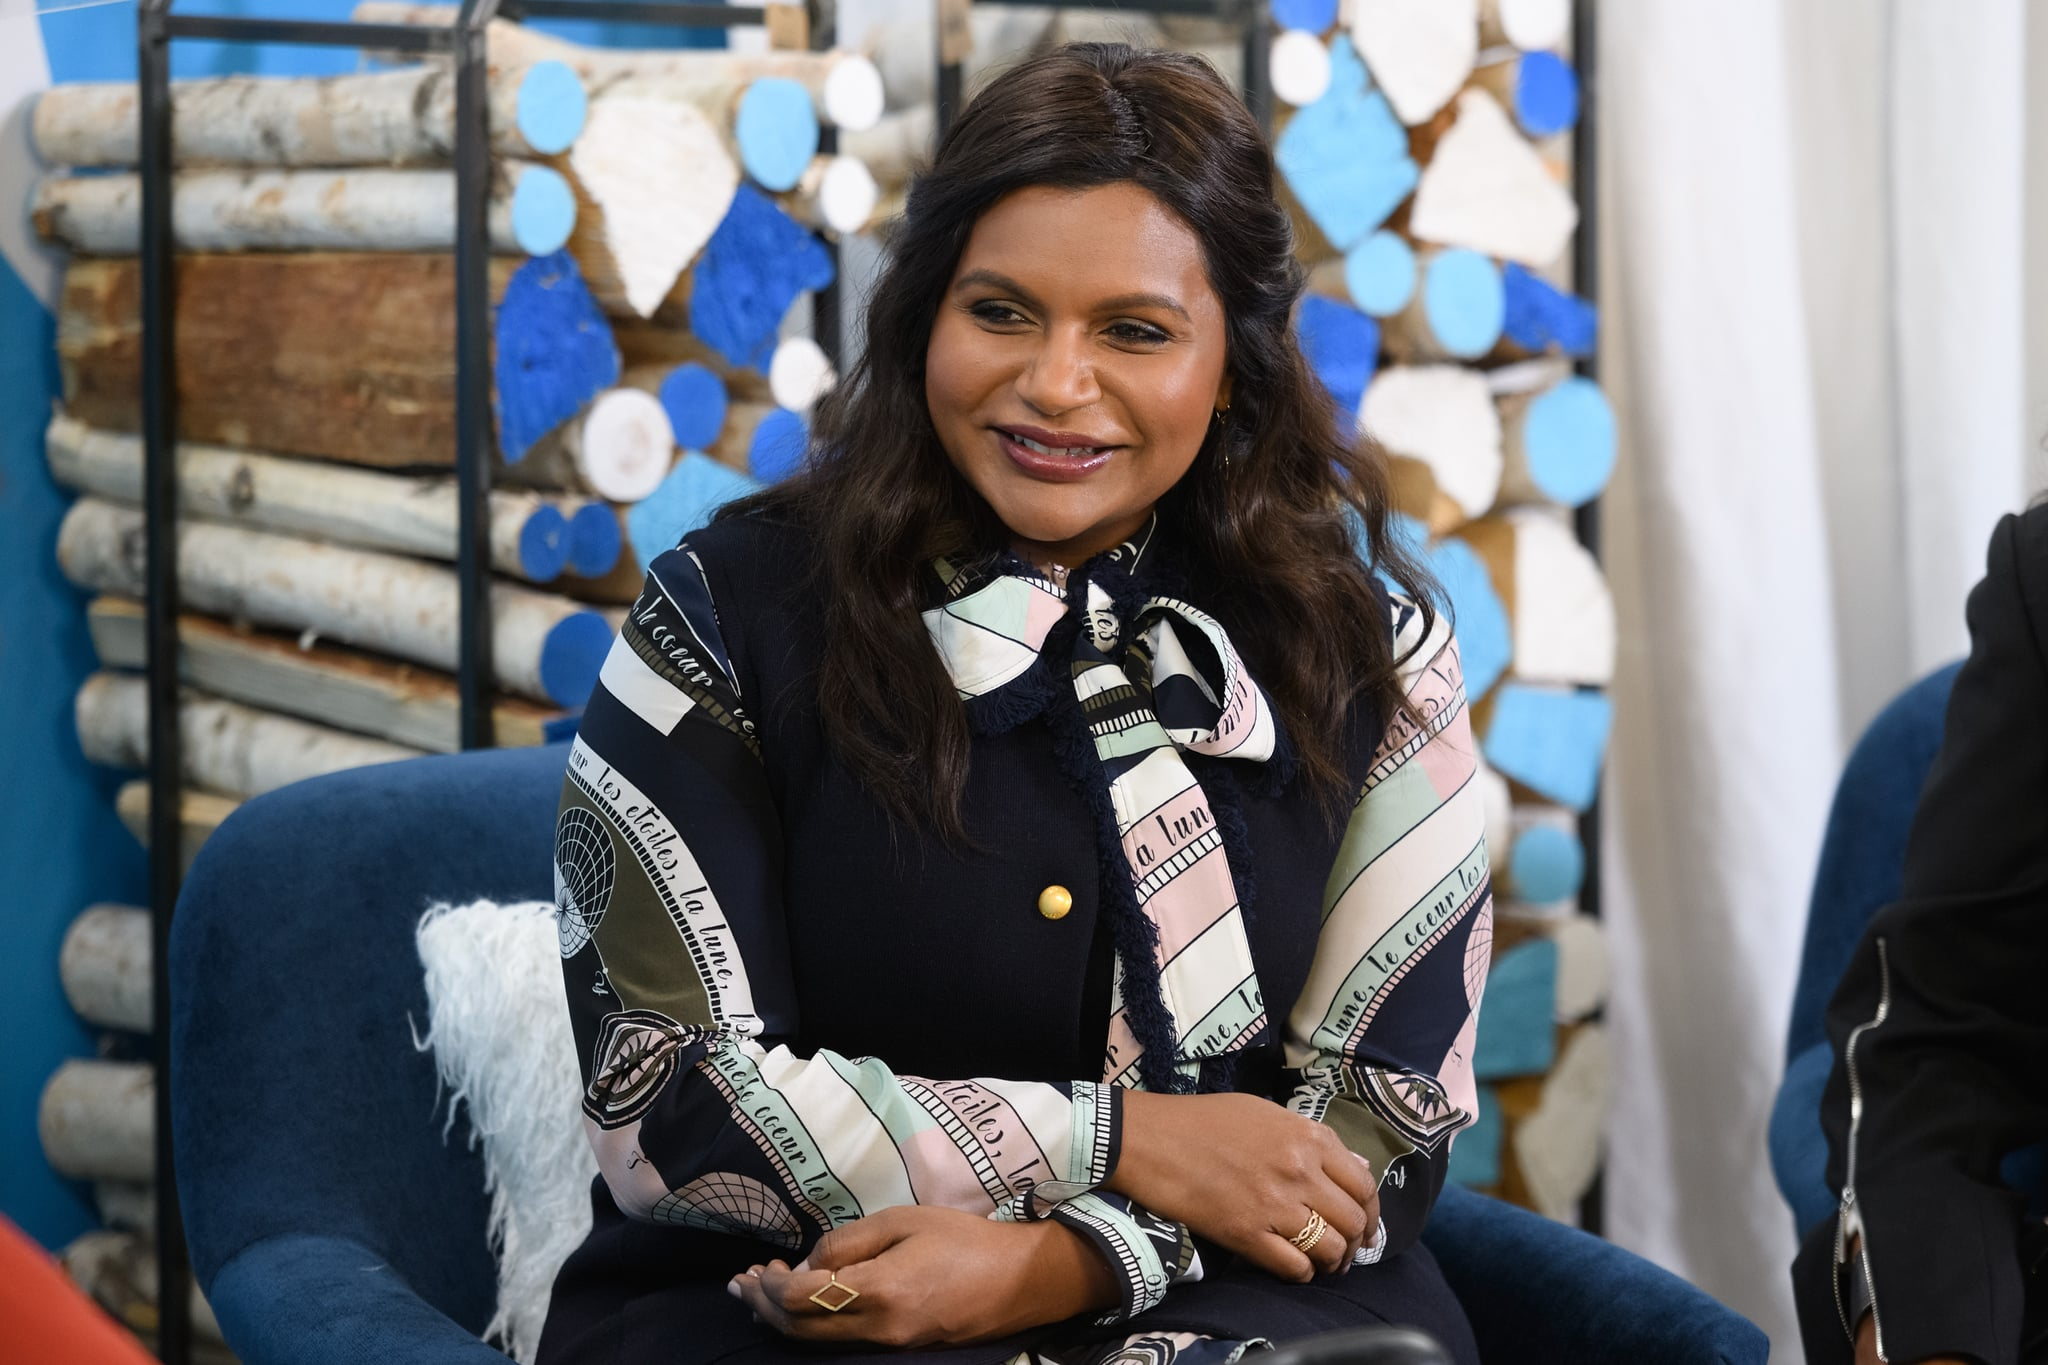 PARK CITY, UT - JANUARY 25:  Mindy Kaling attends The Vulture Spot during Sundance Film Festival on January 25, 2019 in Park City, Utah.  (Photo by Daniel Boczarski/Getty Images for New York Magazine)